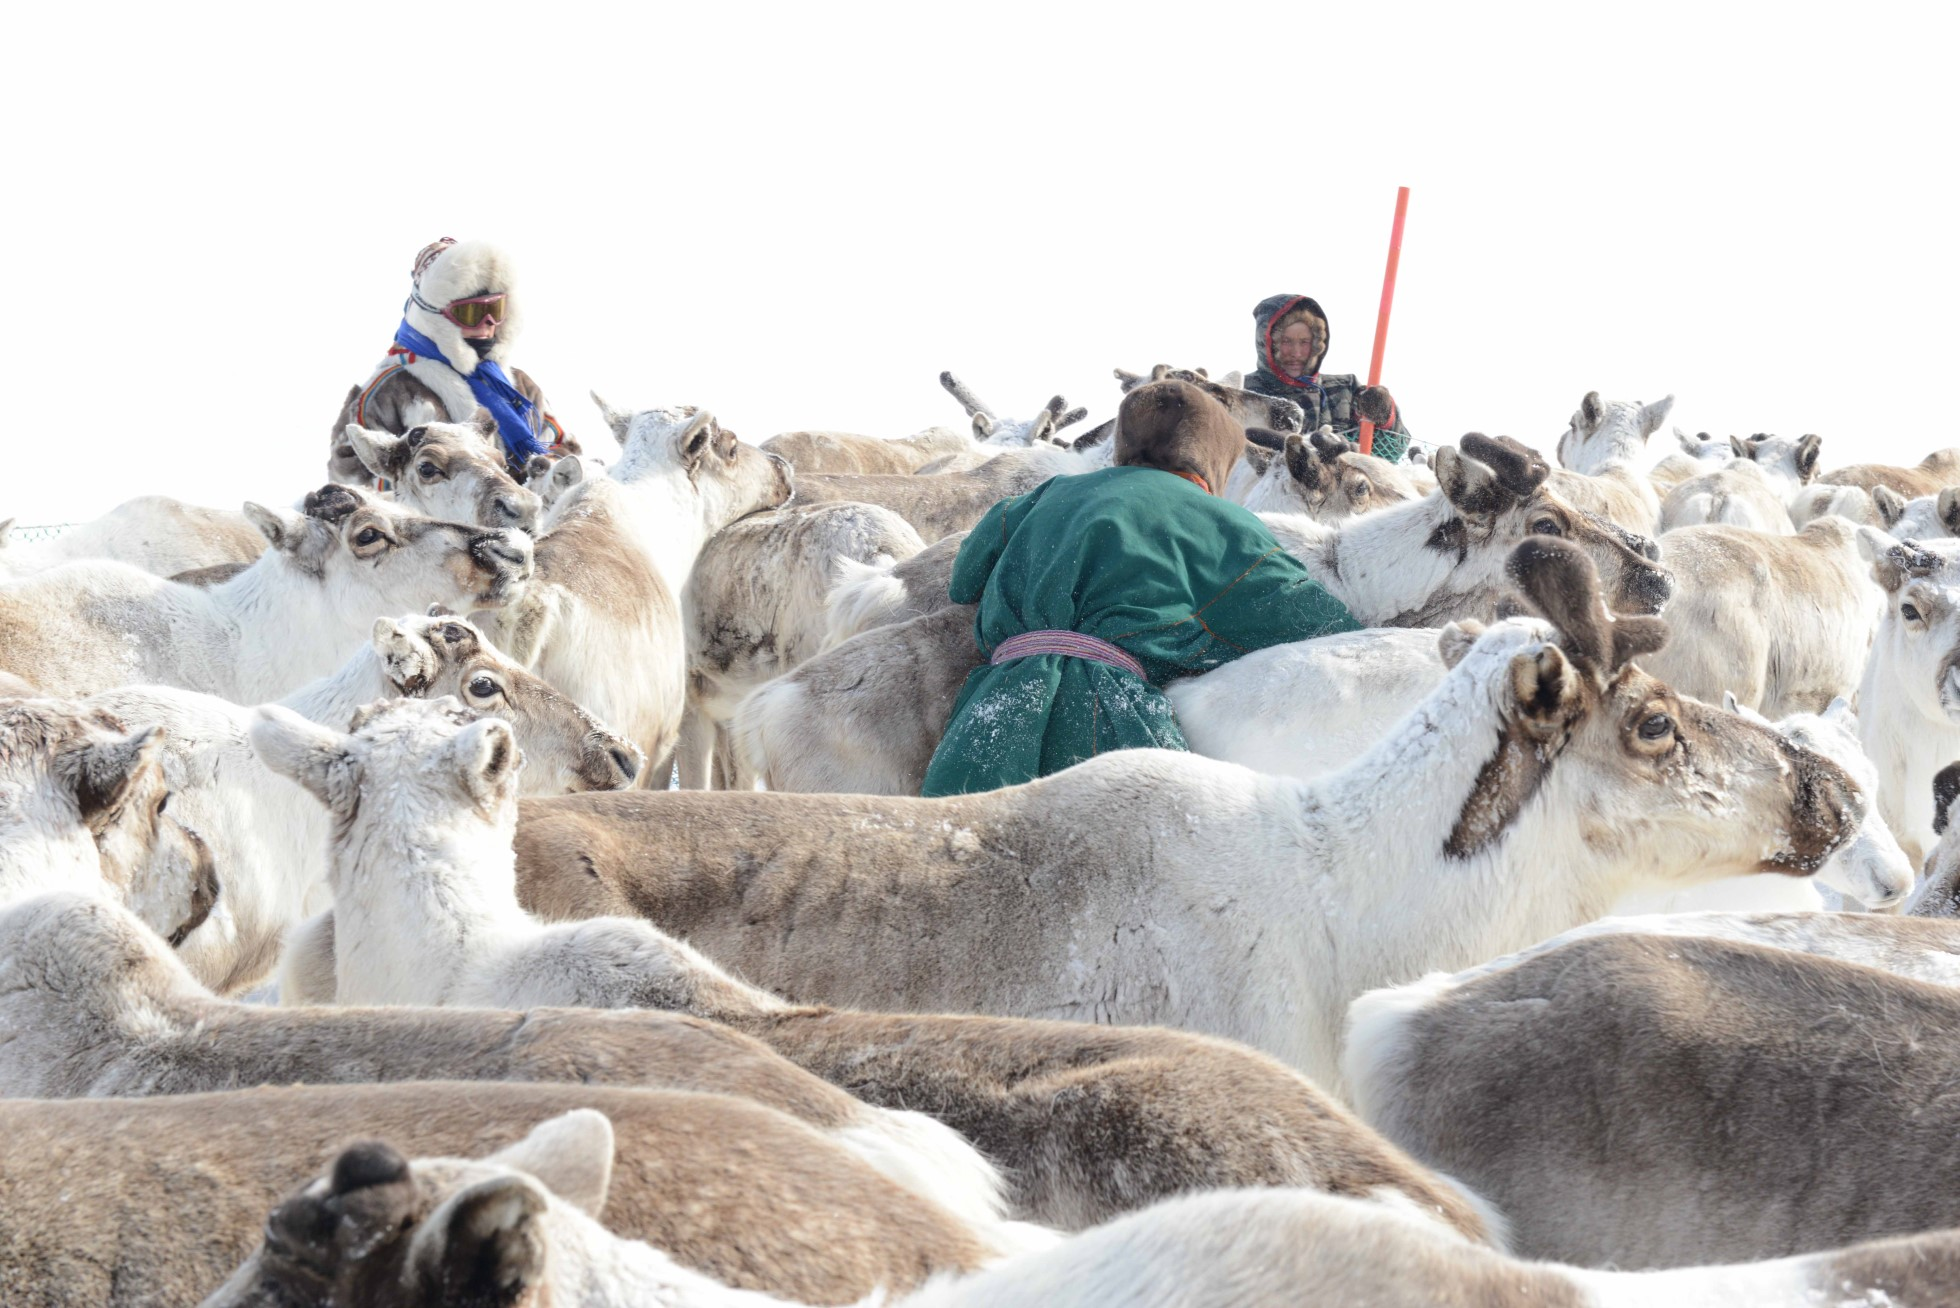 Photograph of a heard of reindeer all together. Three people stand amongst the tightly grouped reindeer. One wears a green jacket with purple belt and fur hat. Another wears a fur parka and hat. Another is visible in the background holding a red stick.